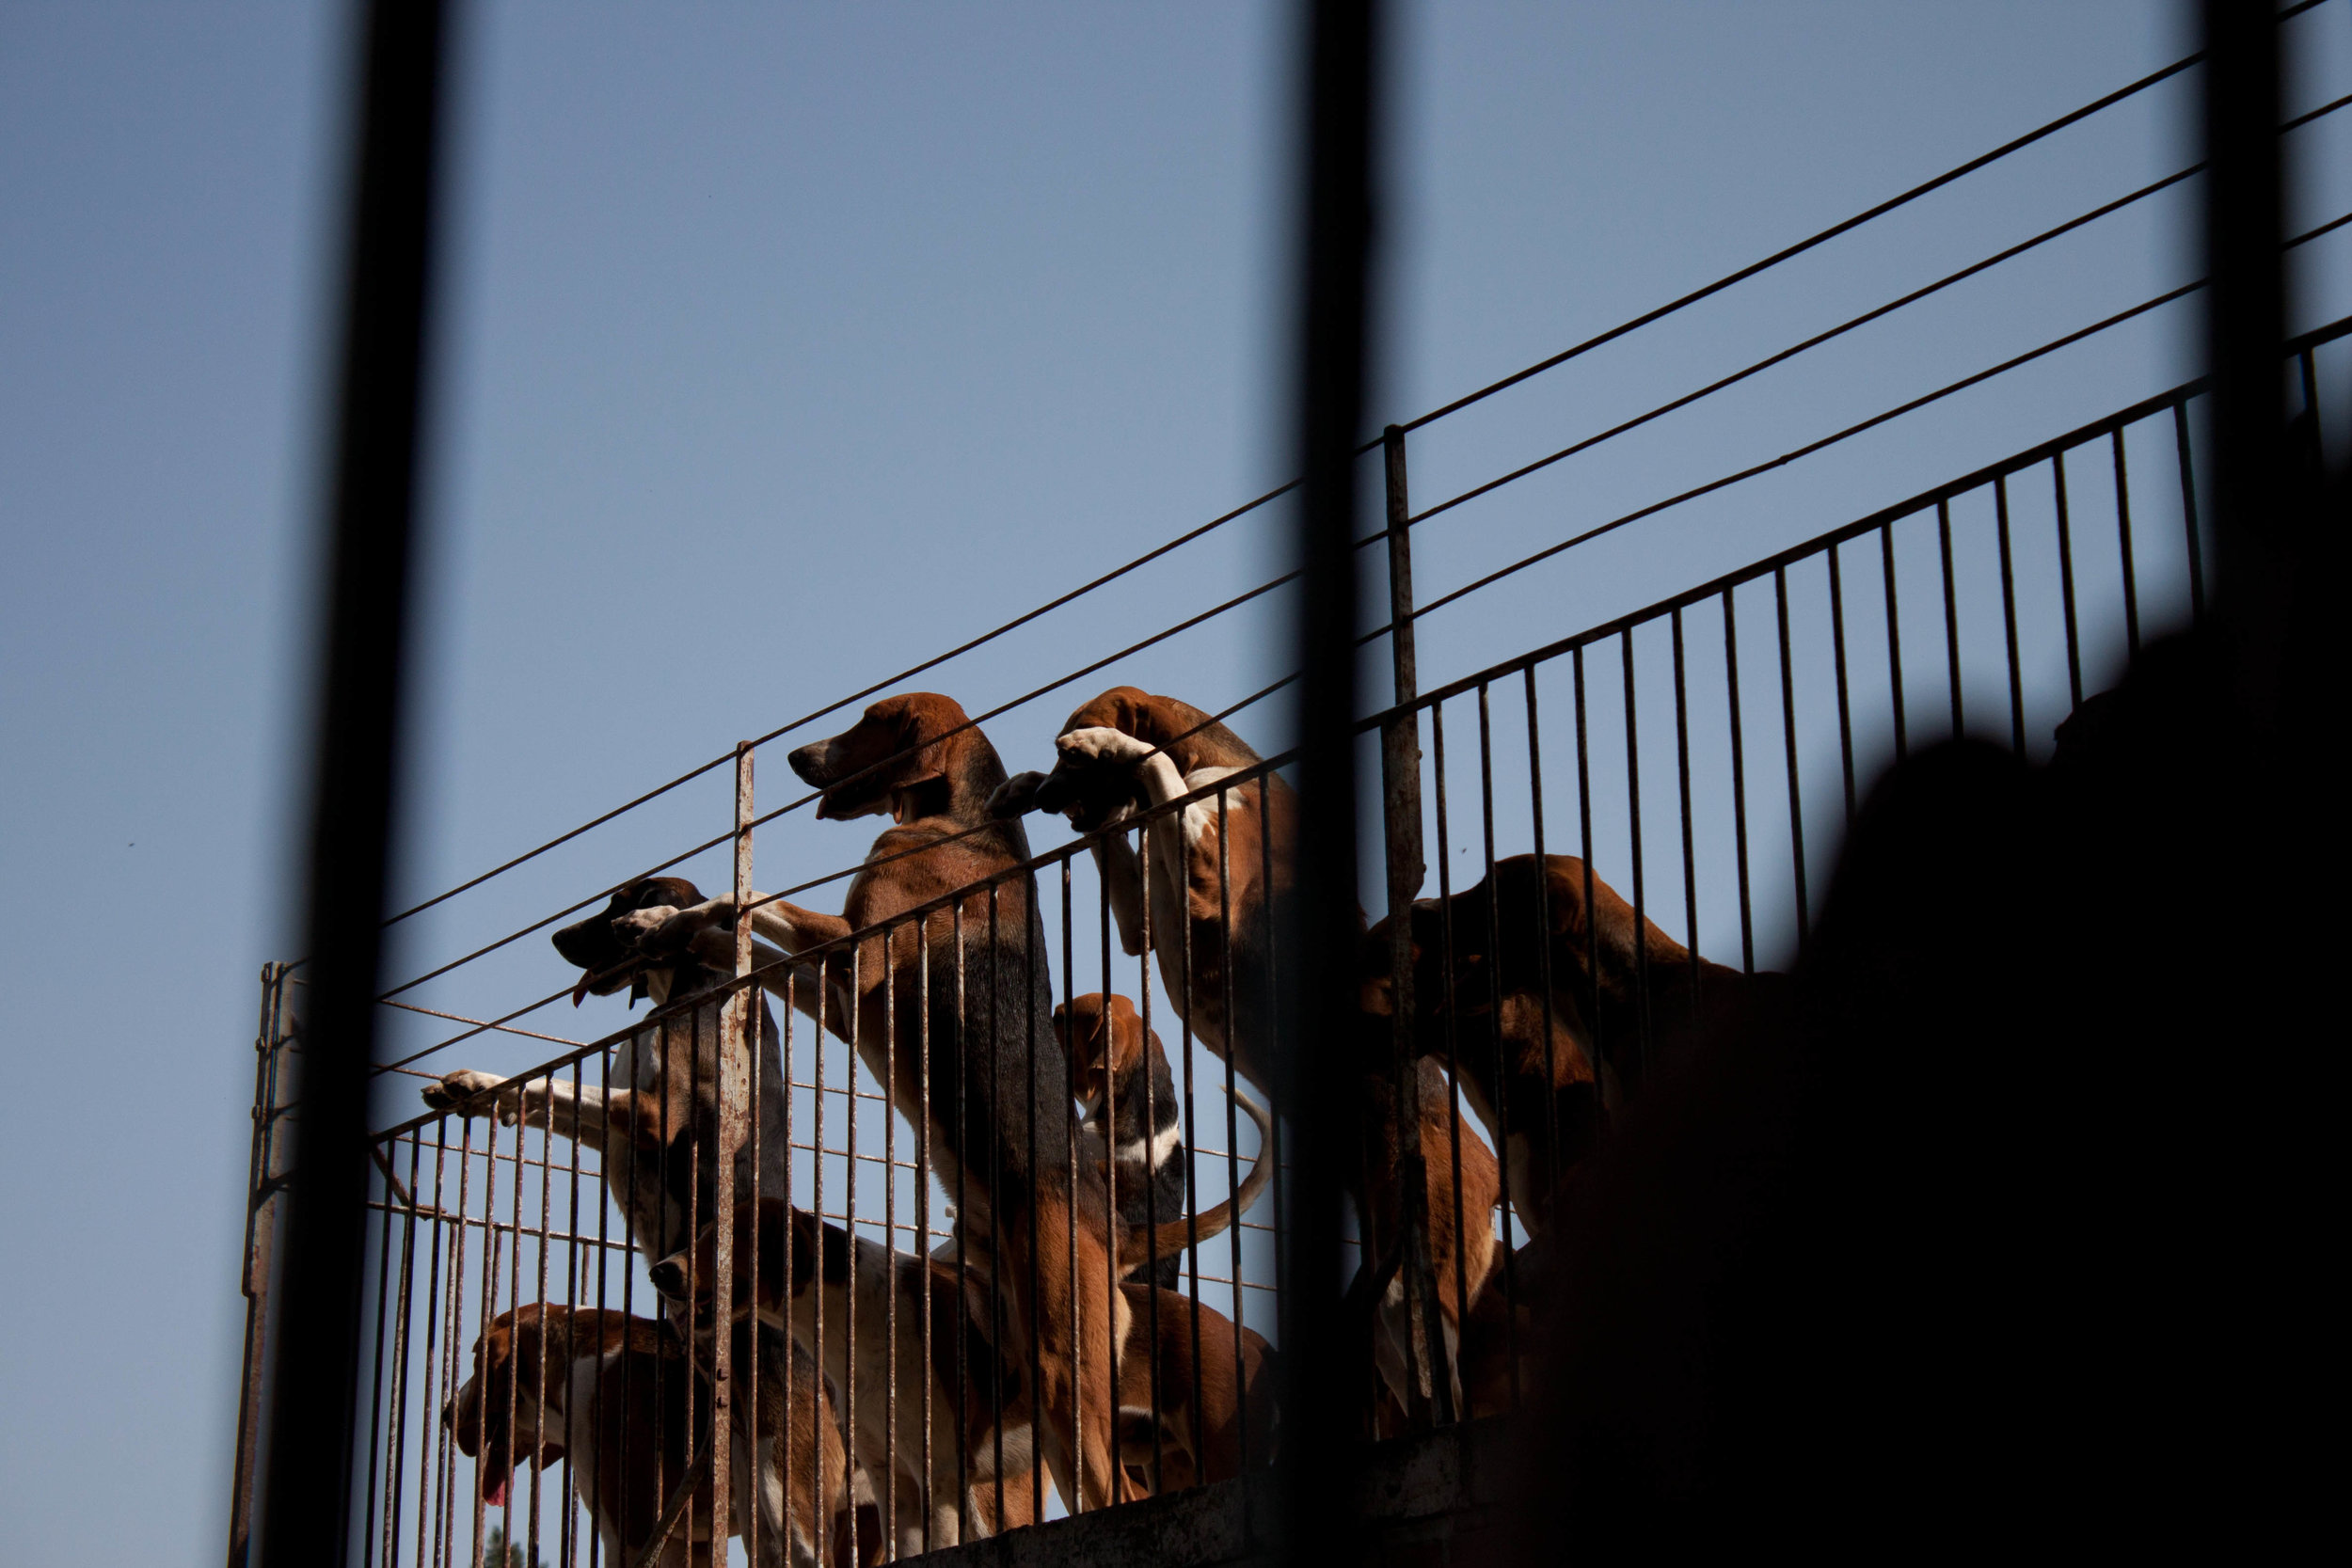 Hunting hounds stand on their hind legs as they await feeding at Chateau de Cheverny in Cheverny, France, August 2012.